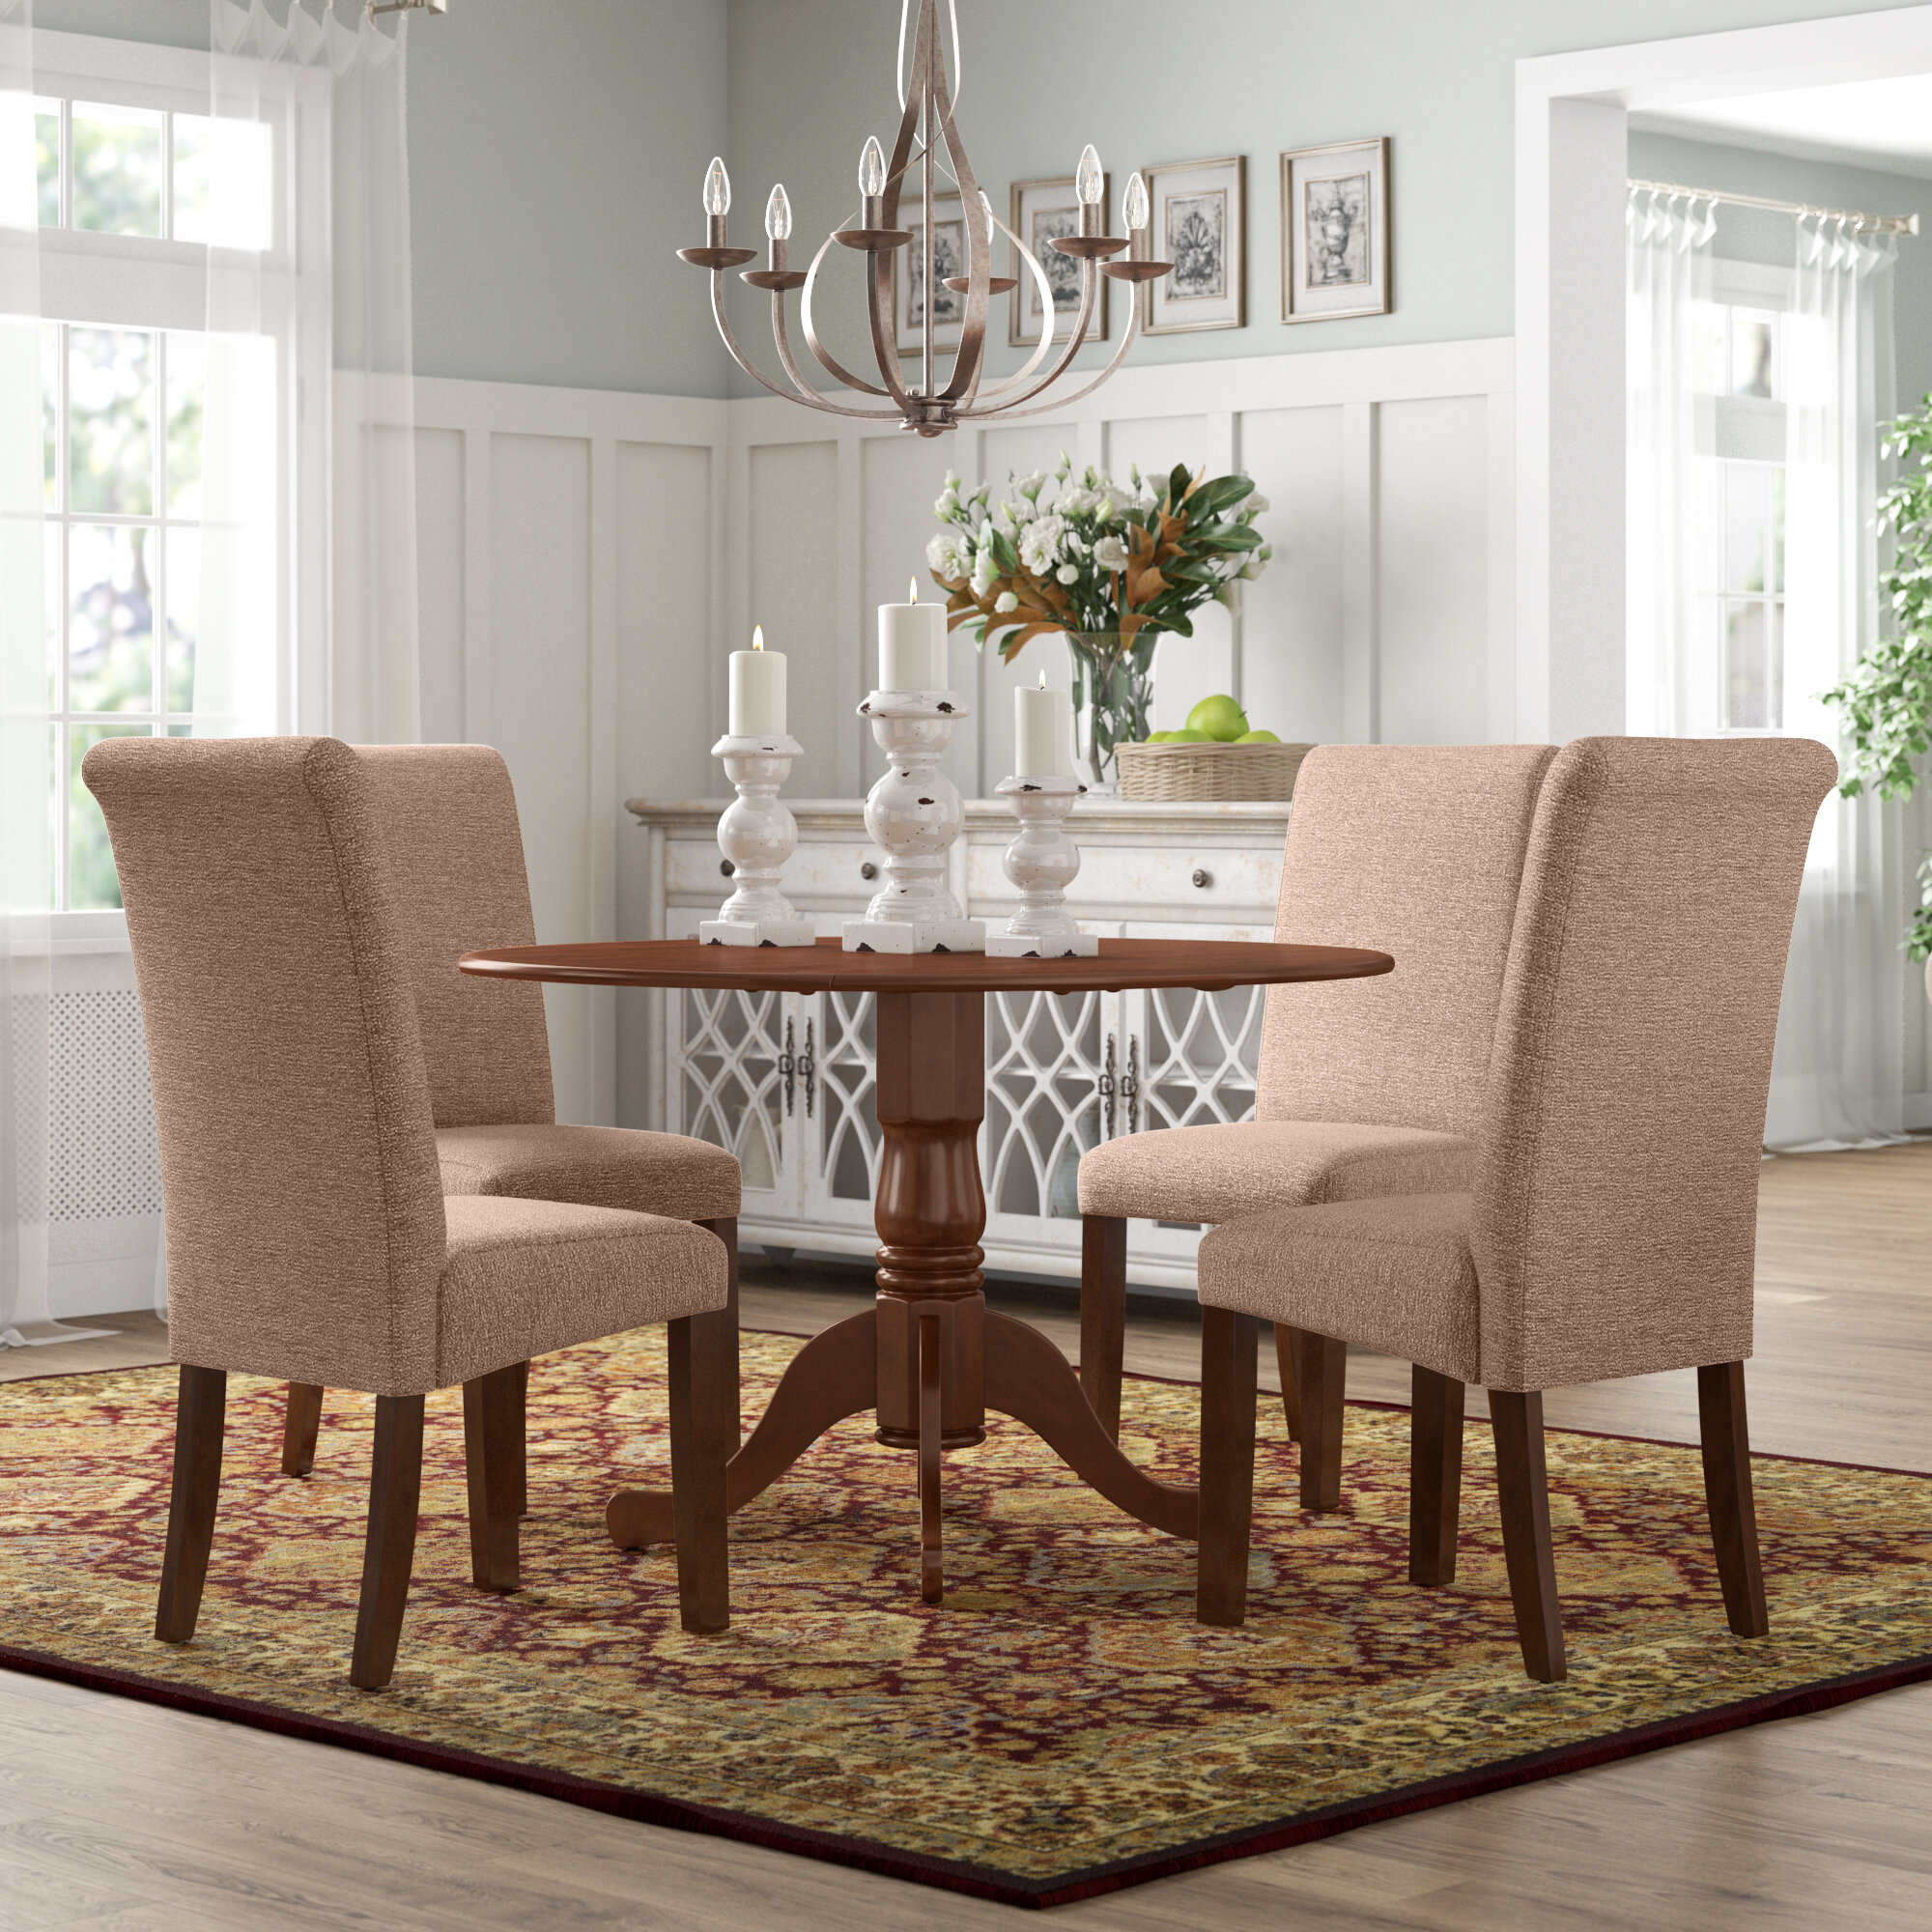 Charlton Home Parise Small Table 5 Piece Drop Leaf Solid Wood Breakfast Nook Dining Set Reviews Wayfair